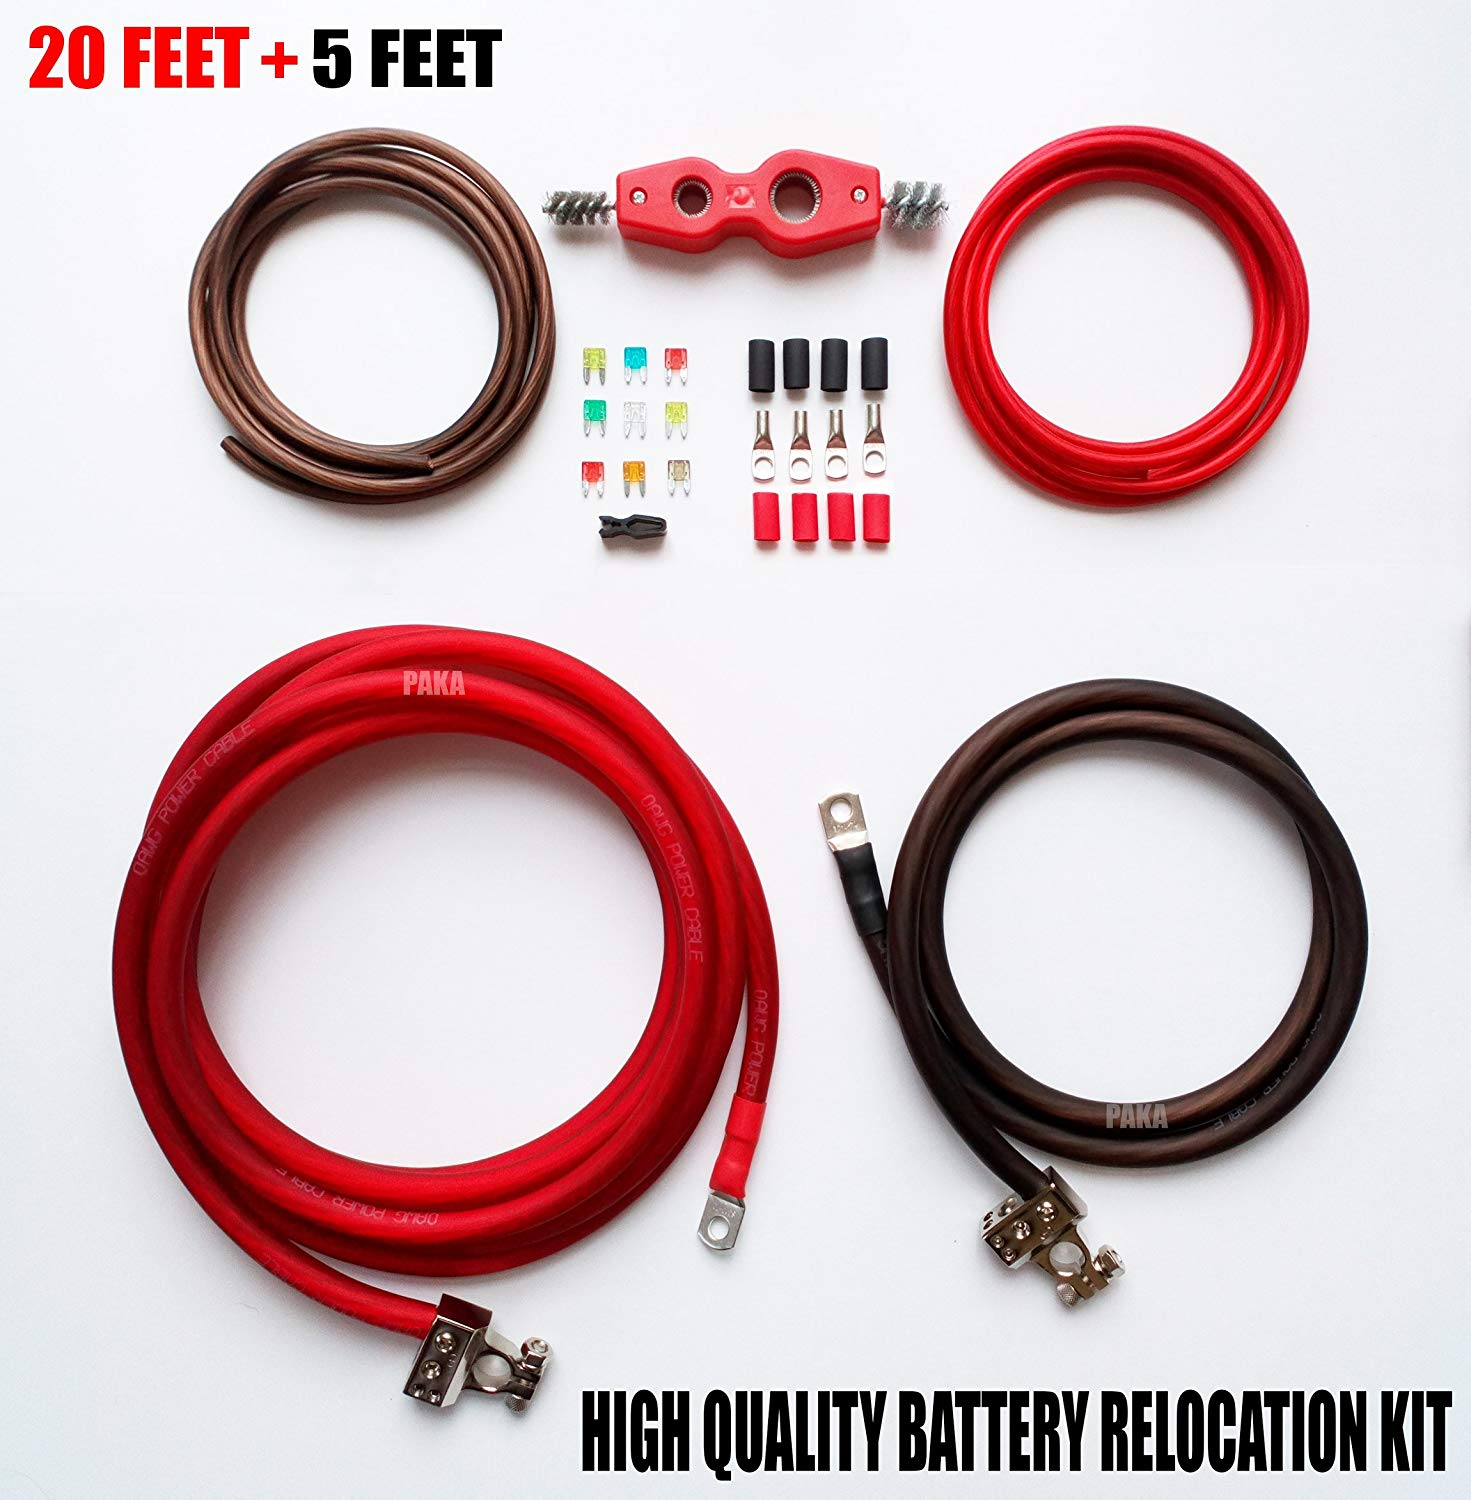 Battery Relocation Kit Real # 4 AWG Cable Top Post 20 FT RED// 5 FT BLACK PAKA HAND TOOLS